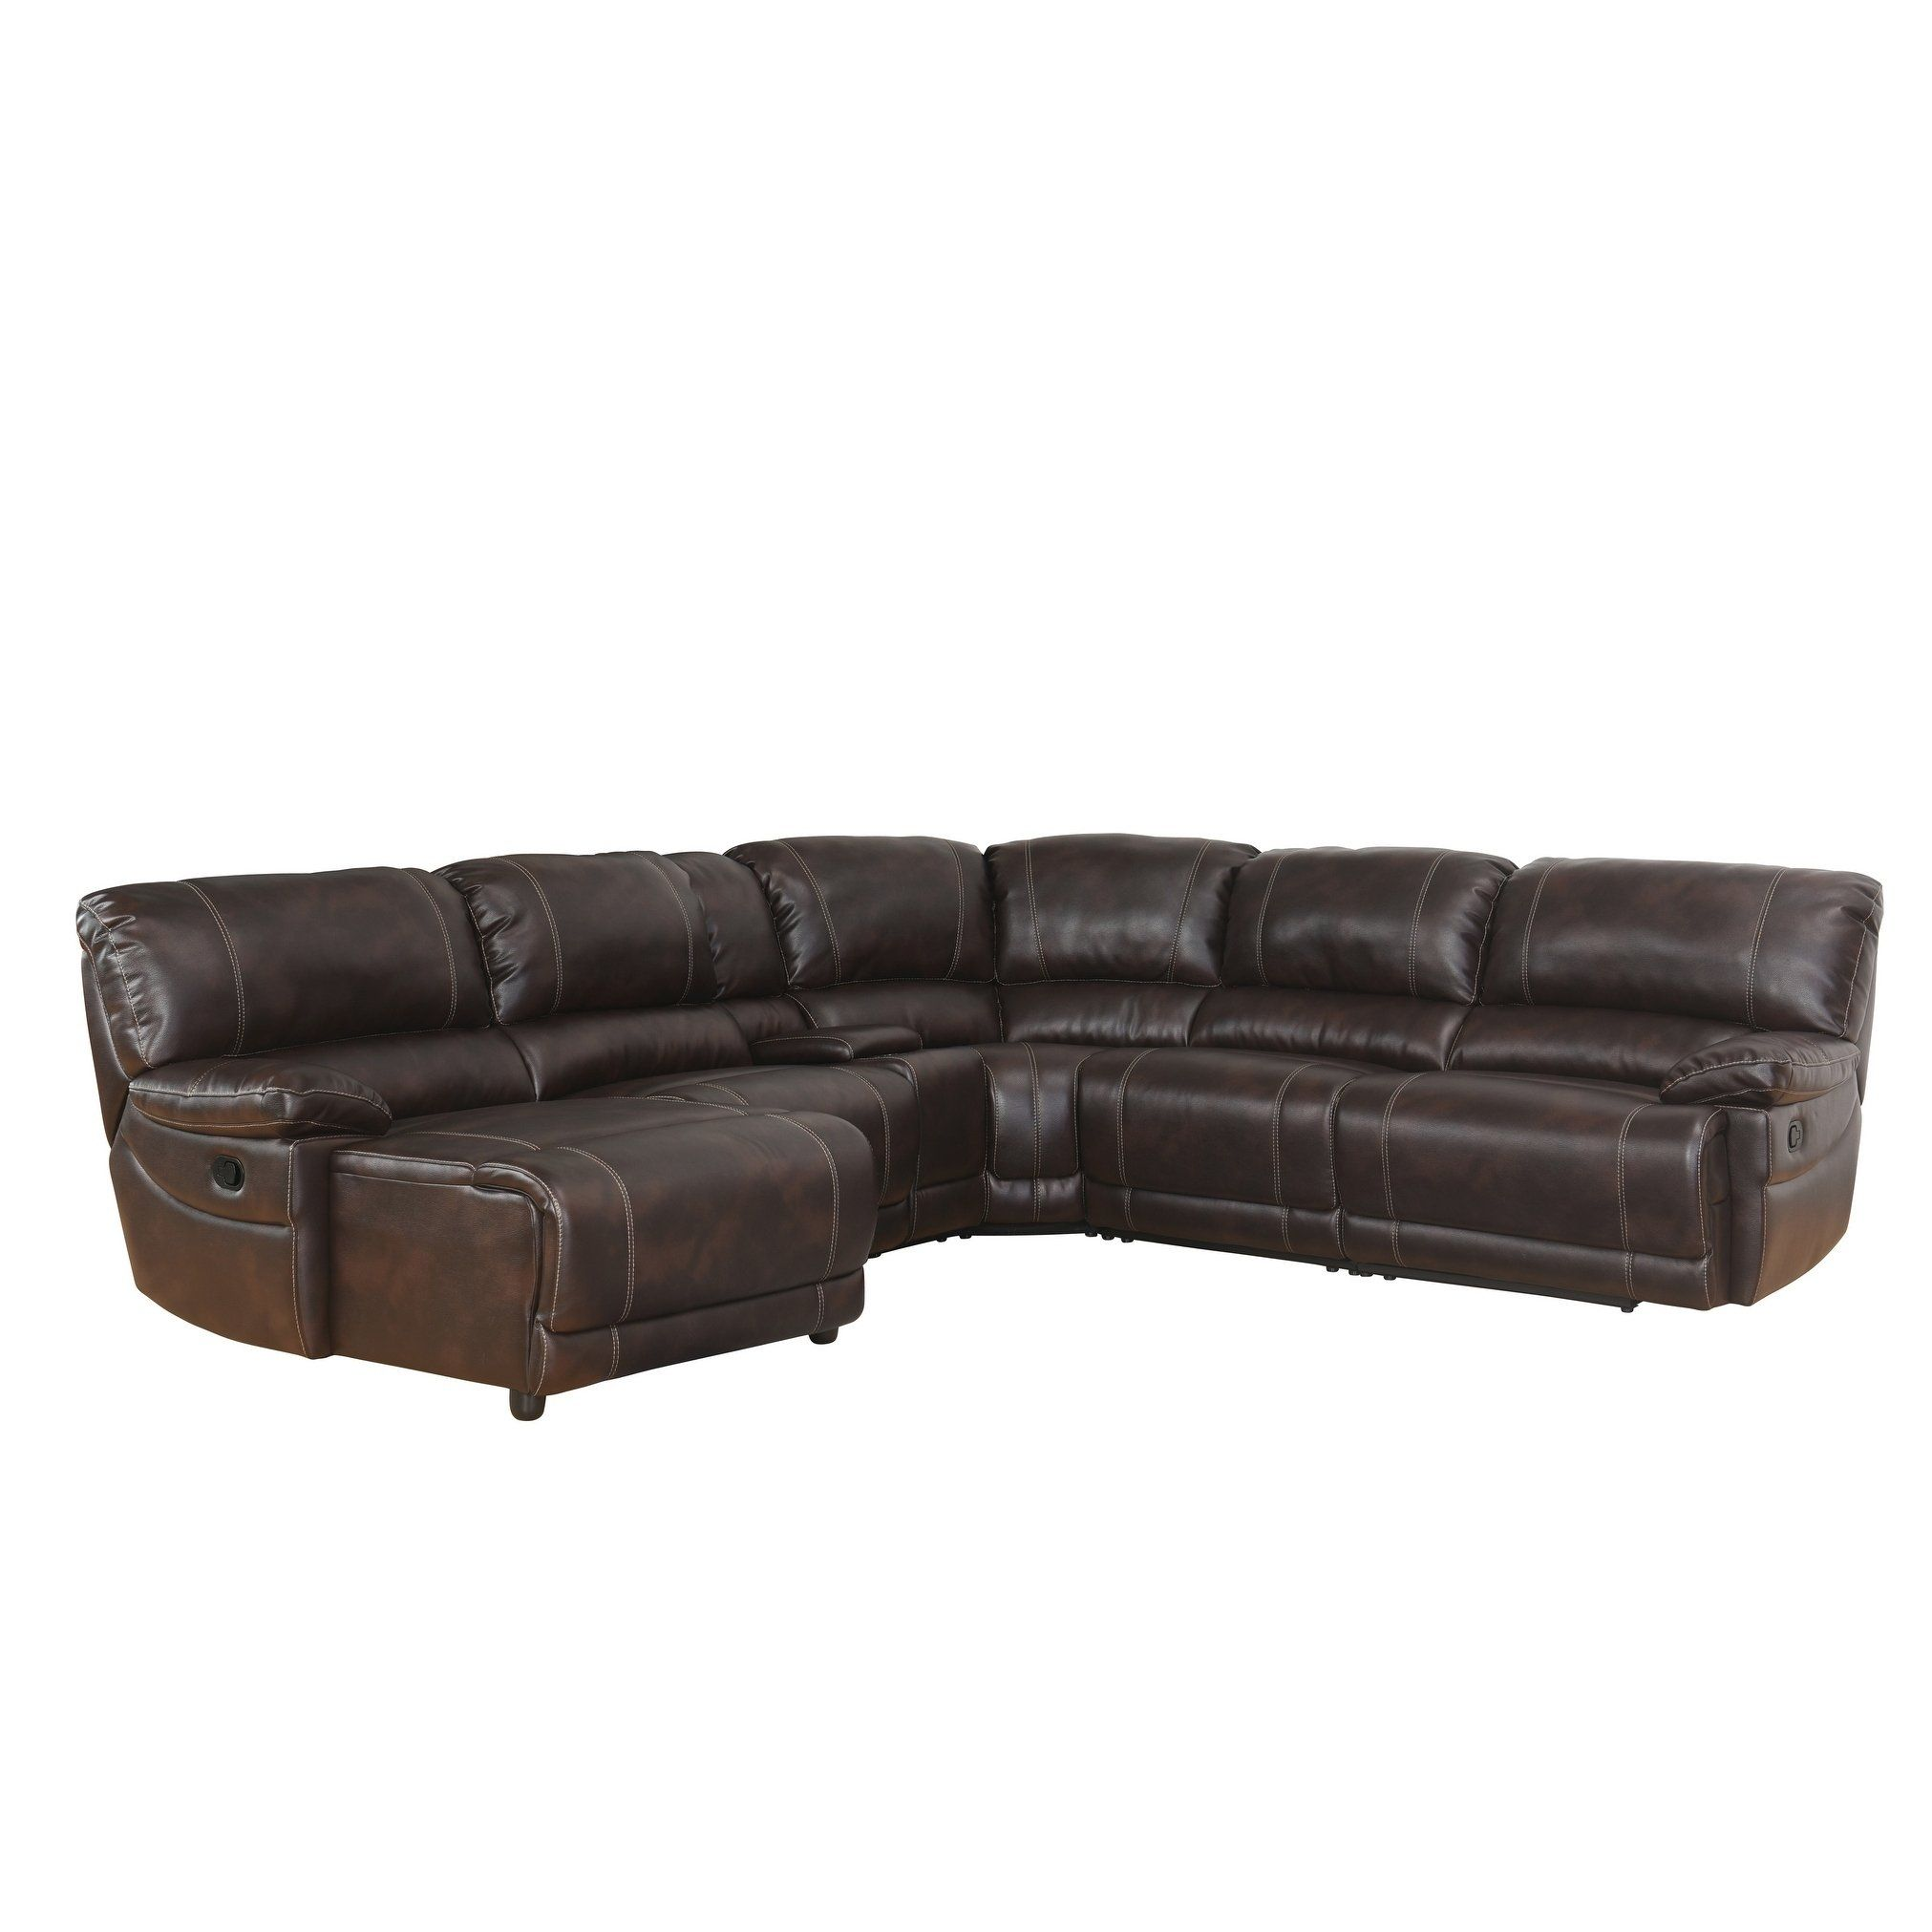 Astounding Abbyson Cooper 6 Piece Dark Brown Sectional Sofa Brown Caraccident5 Cool Chair Designs And Ideas Caraccident5Info